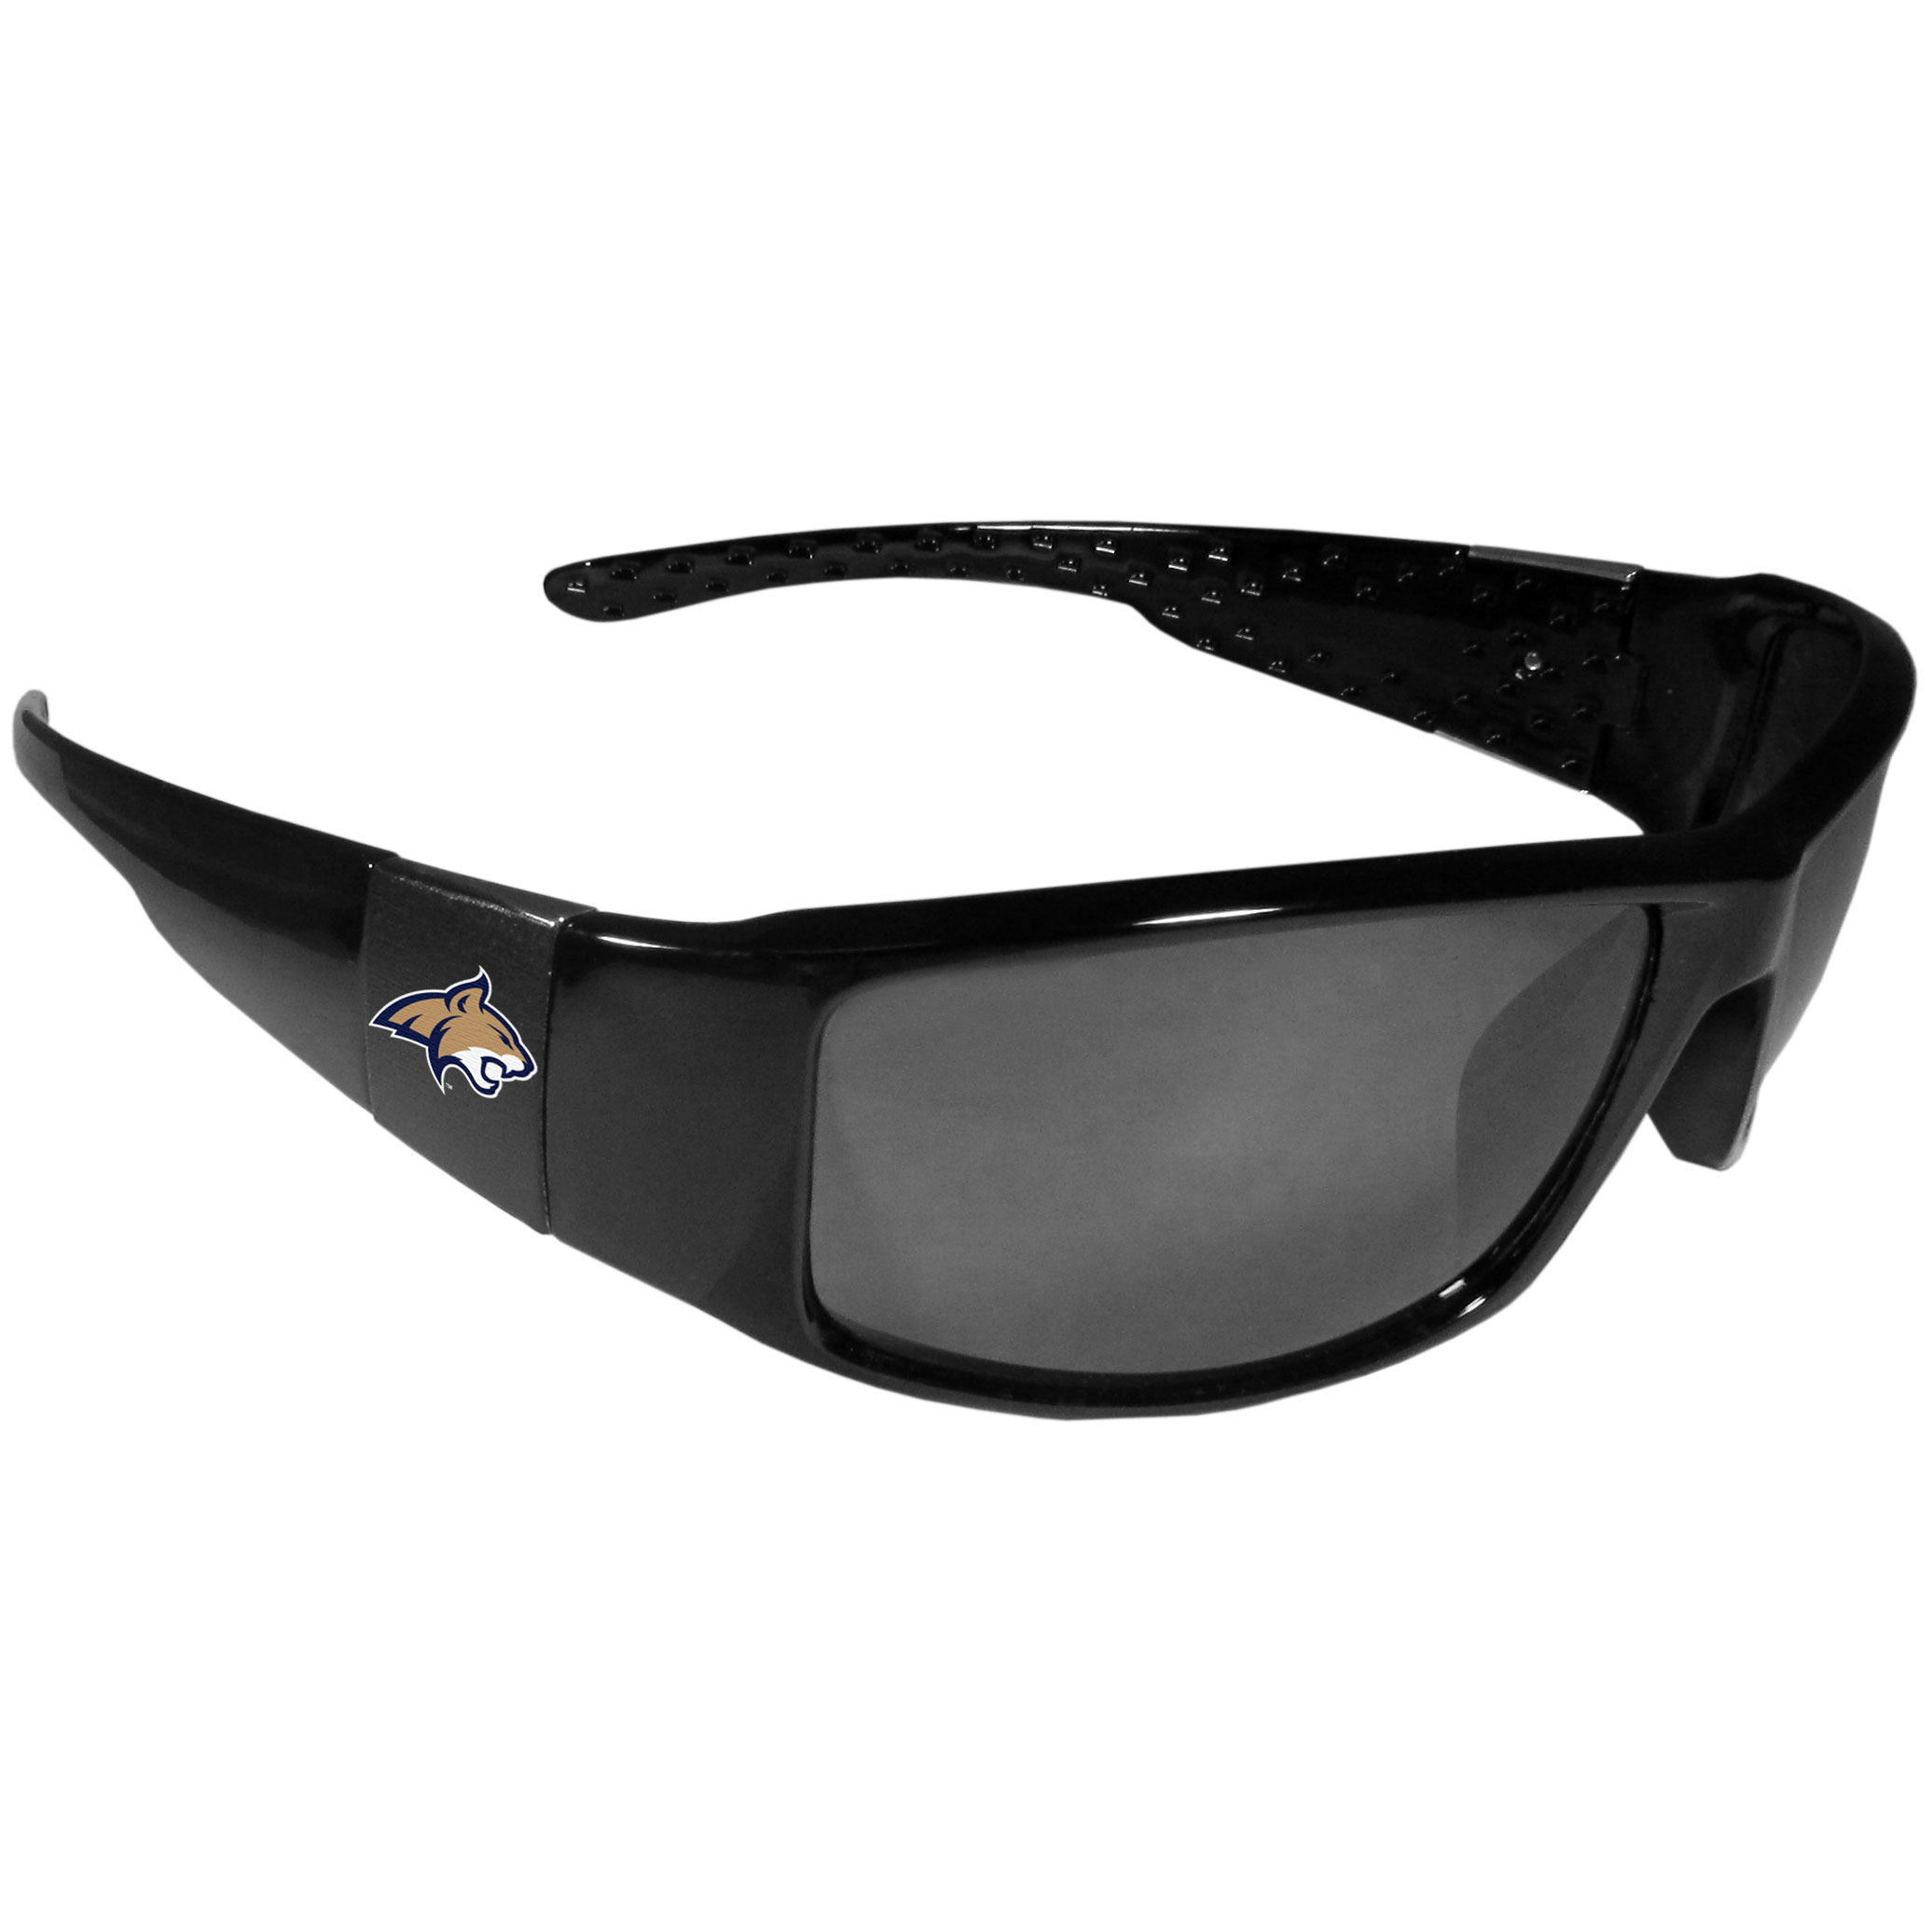 Montana St. Bobcats Black Wrap Sunglasses - These designer inspired frames have a sleek look in all black with  Montana St. Bobcats shields on each arm with a printed logo. The shades are perfect for any outdoor activity like; golfing, driving, hiking, fishing or cheering on the team at a tailgating event or at a home game day BBQ with a lens rating of 100% UVA/UVB for maximum UV protection. The high-quality frames are as durable as they are fashionable and with their classic look they are the perfect fan accessory that can be worn everyday for every occasion.